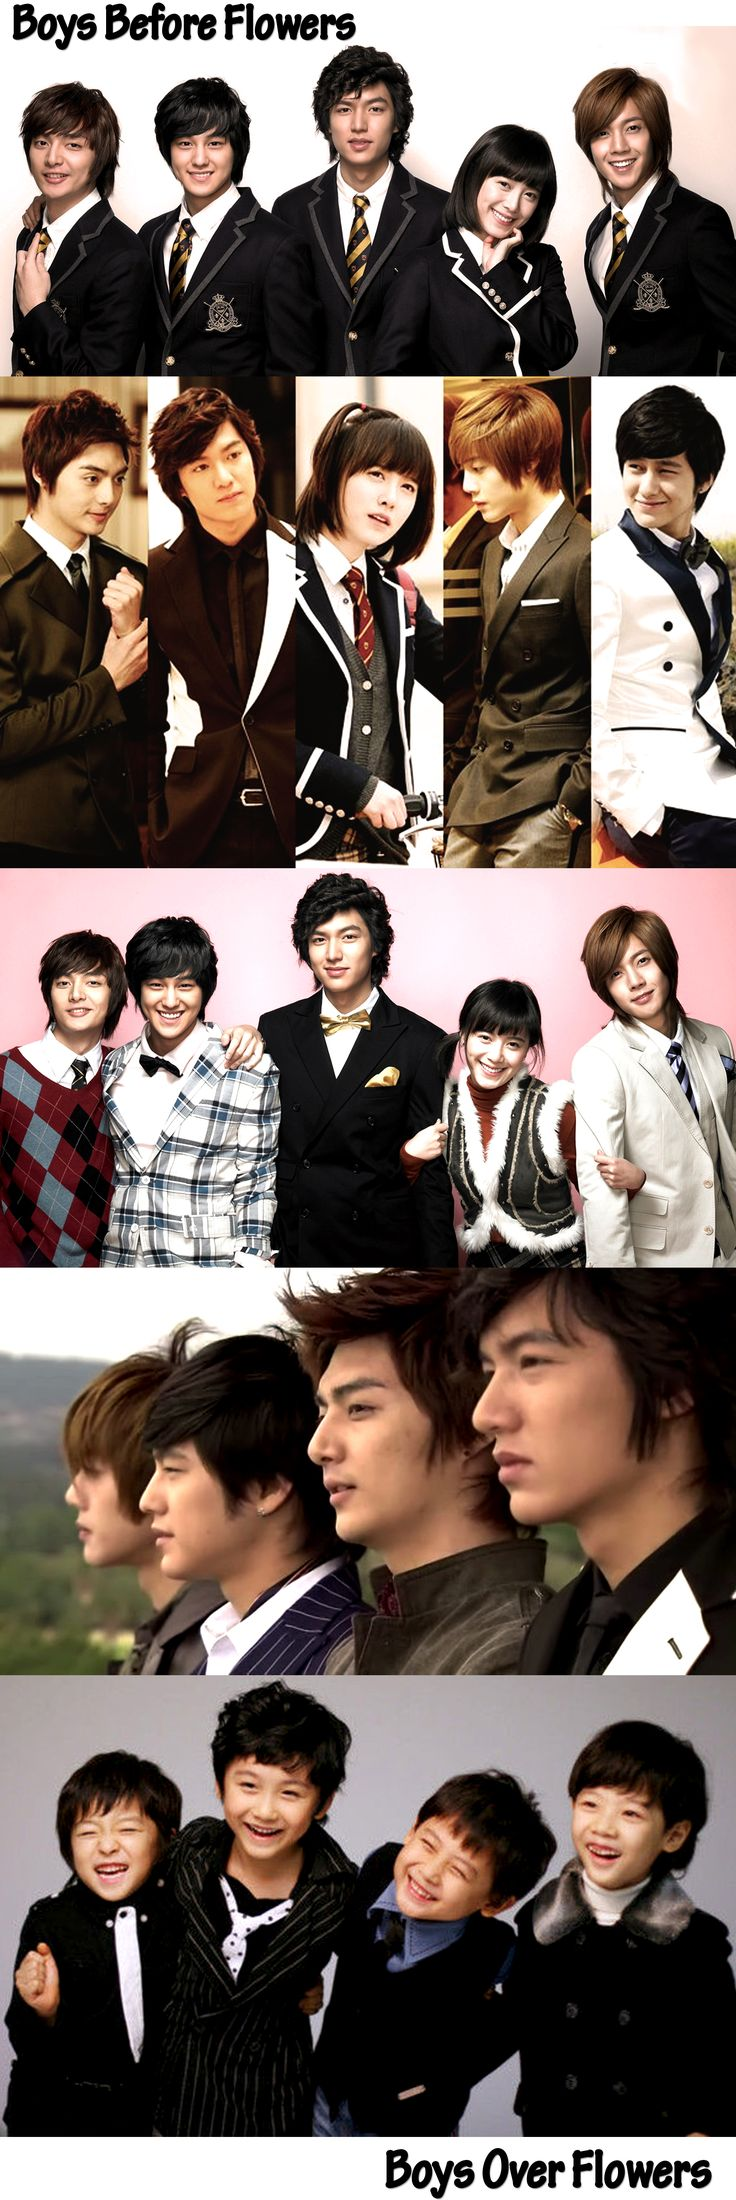 꽃보다 남자 - Boys Before Flowers (Boys Over Flowers) - KDRAMA 2009 - 25 episodes - Koo Hye Sun / Lee Min Ho / Kim Hyeon Joong / Kim Bum / Kim Joon by Luciane Miyuki Sakakima